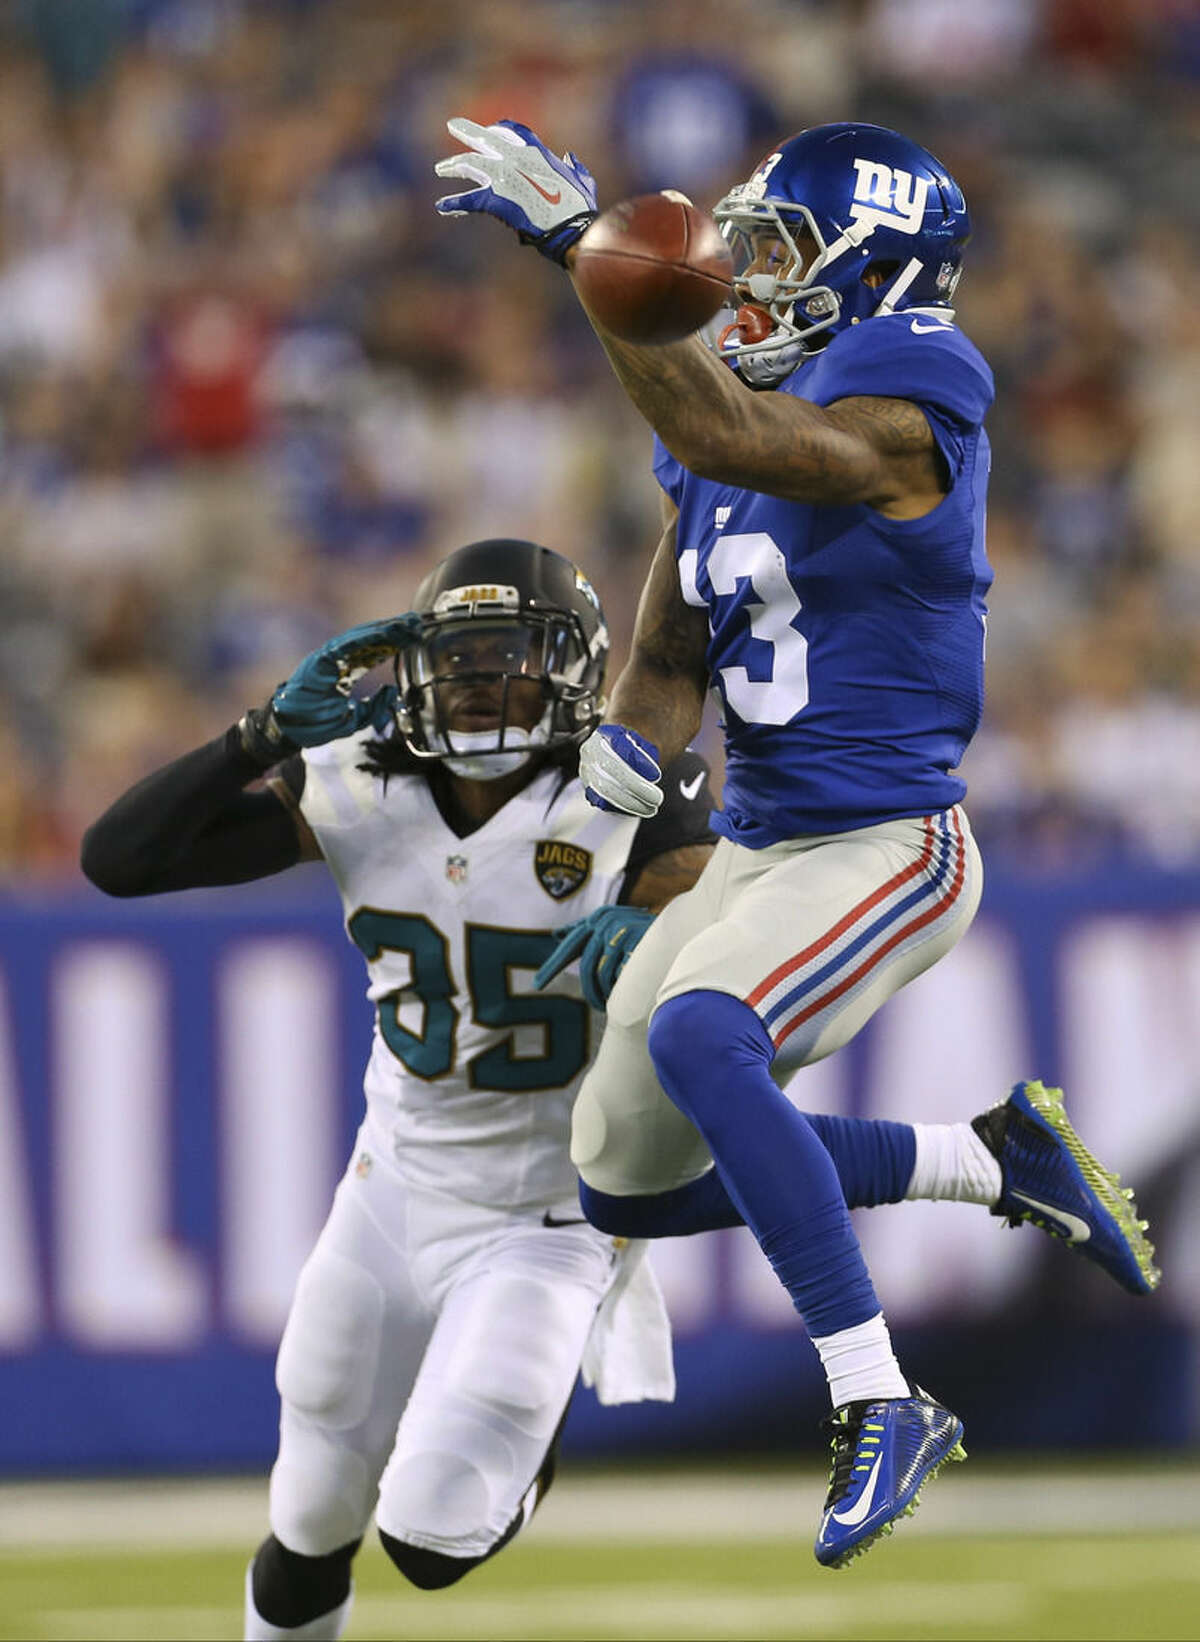 New York Giants wide receiver Odell Beckham (13) leaps for a ball thrown by quarterback Eli Manning as Jacksonville Jaguars' Demetrius McCray (35) watches during the first half of a preseason NFL football game Saturday, Aug. 22, 2015, in East Rutherford, N.J. The pass was incomplete. (AP Photo/Adam Hunger)